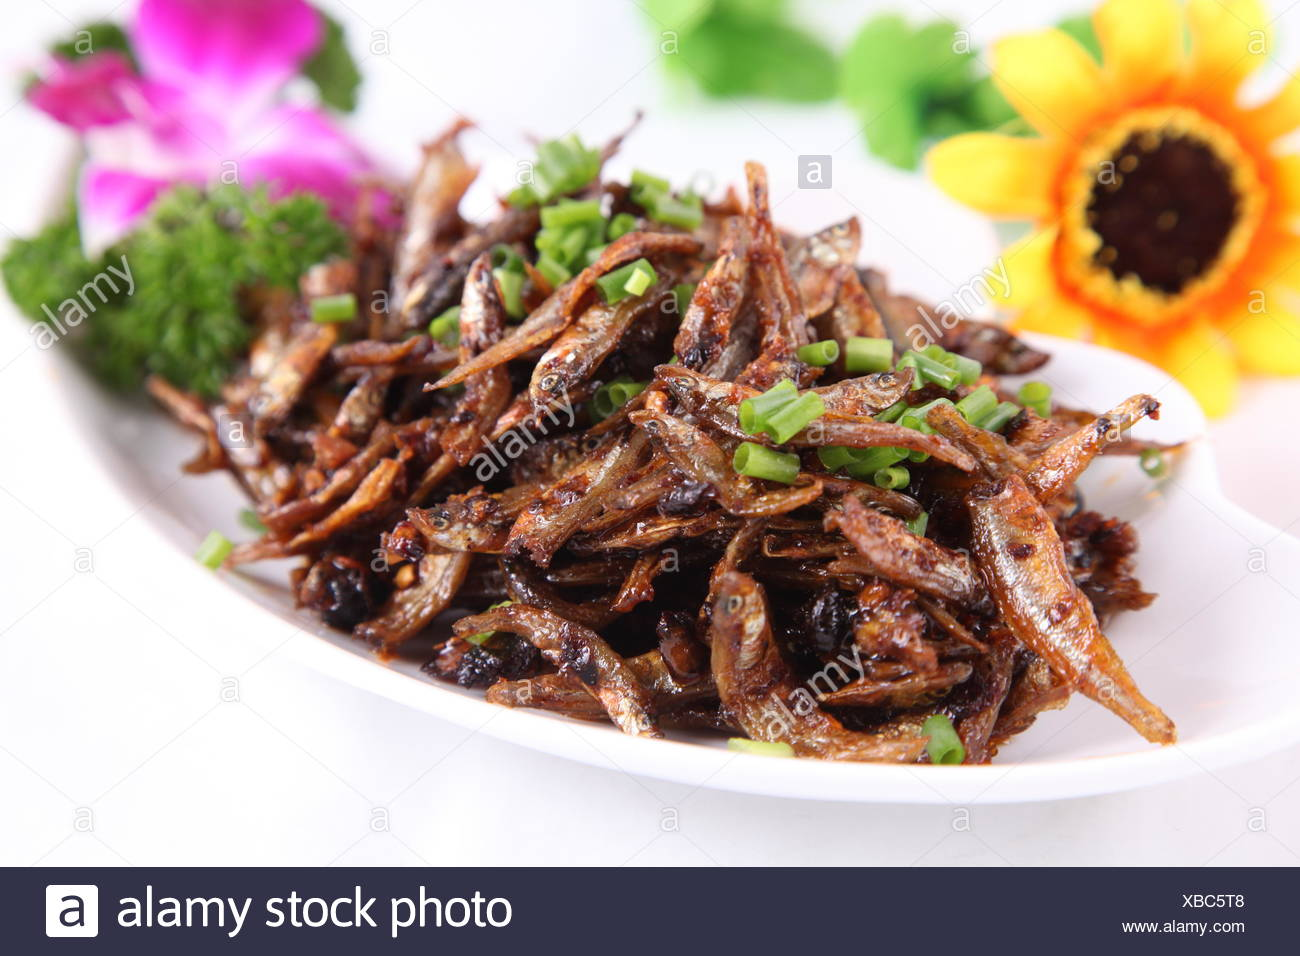 Perfect Hunan Garden Chinese Restaurant Composition - Brown Nature ...